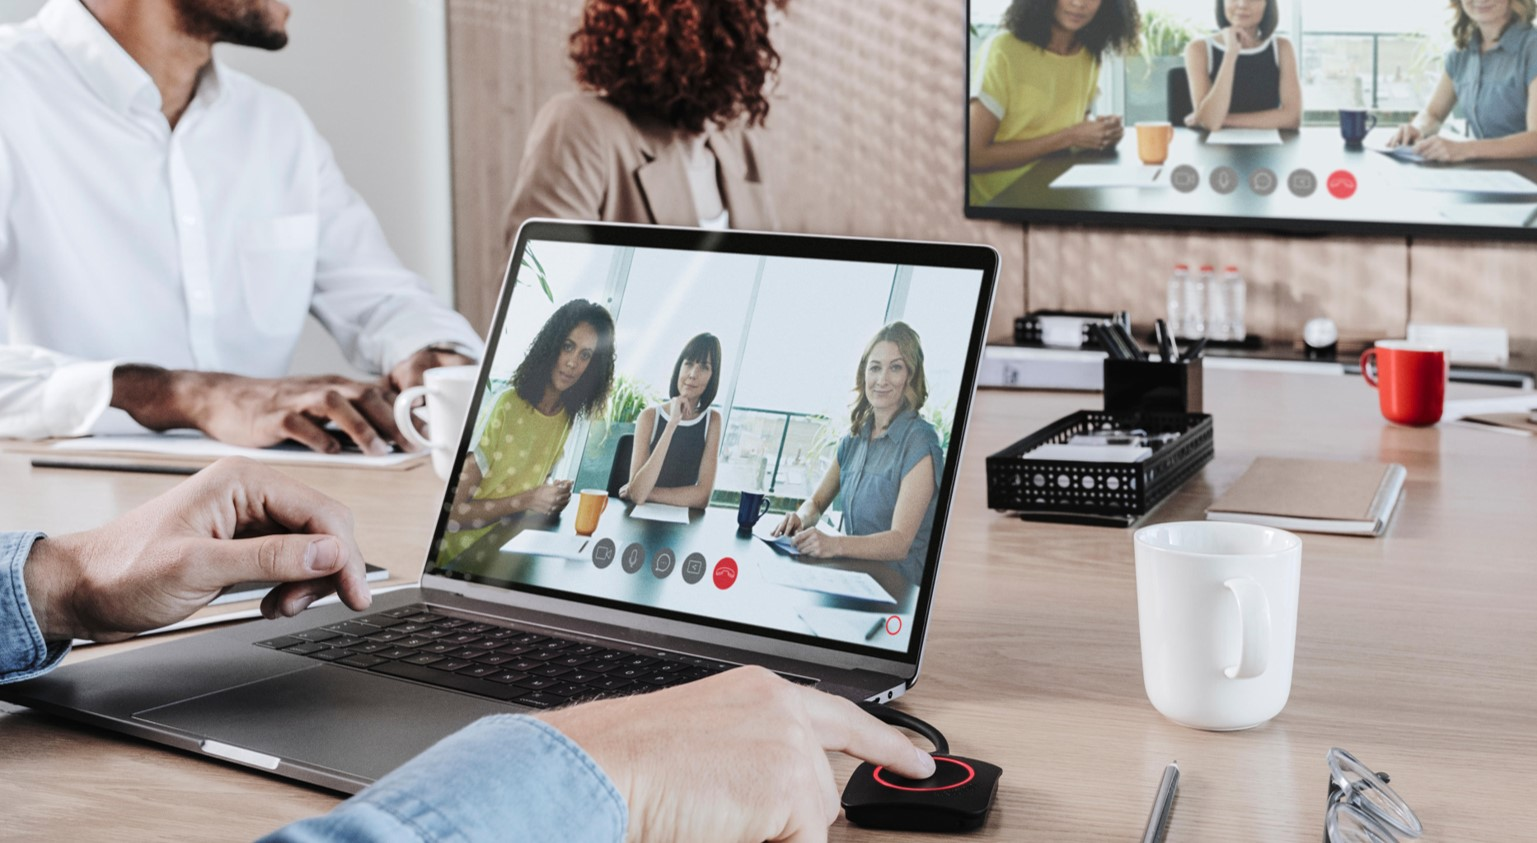 Wireless collaboration solutions